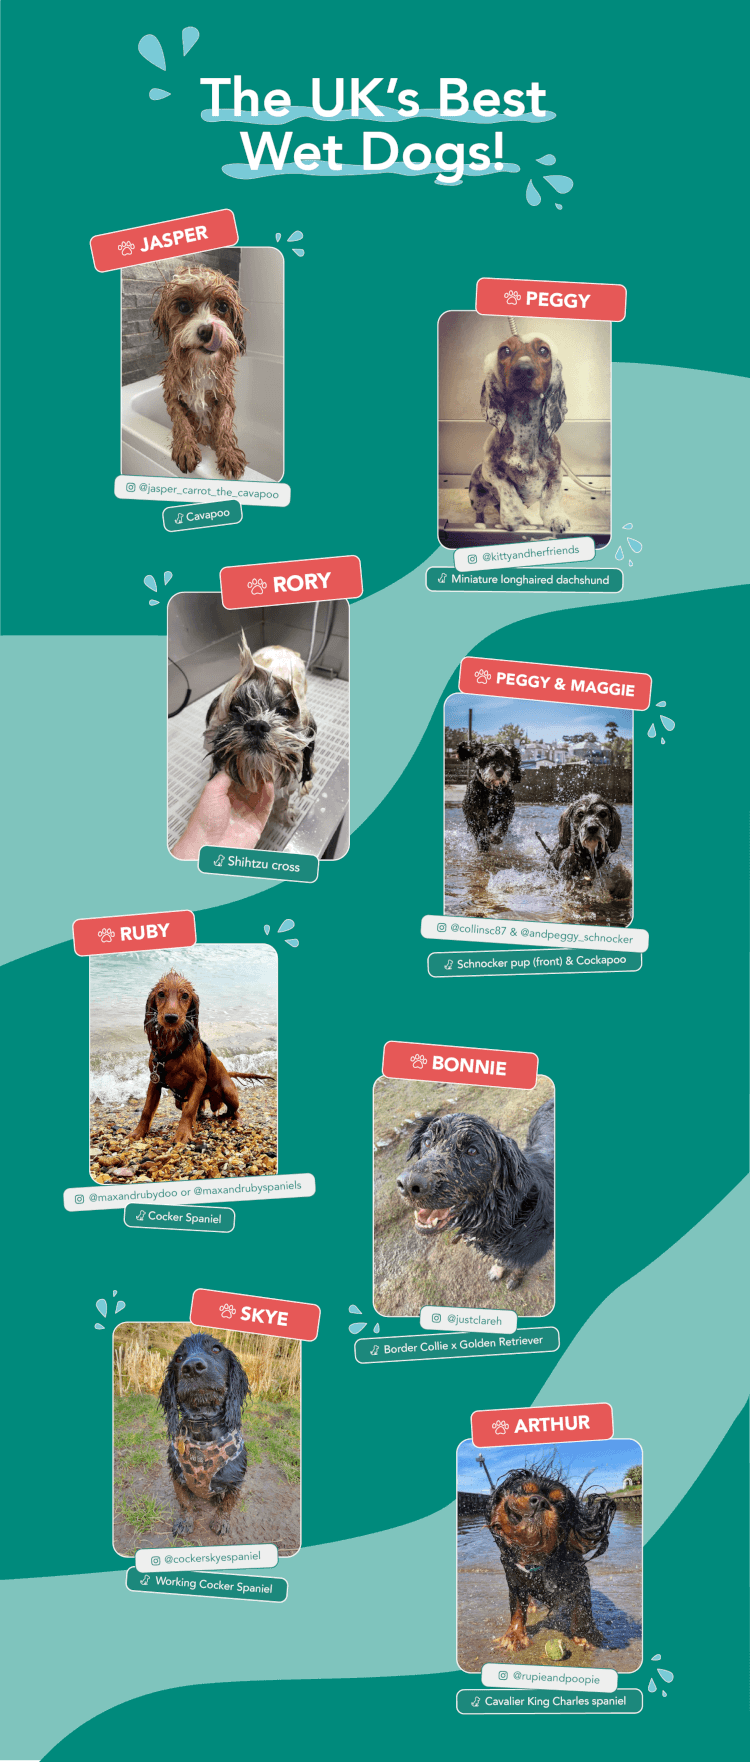 The top 8 finalists in the wet dog competition